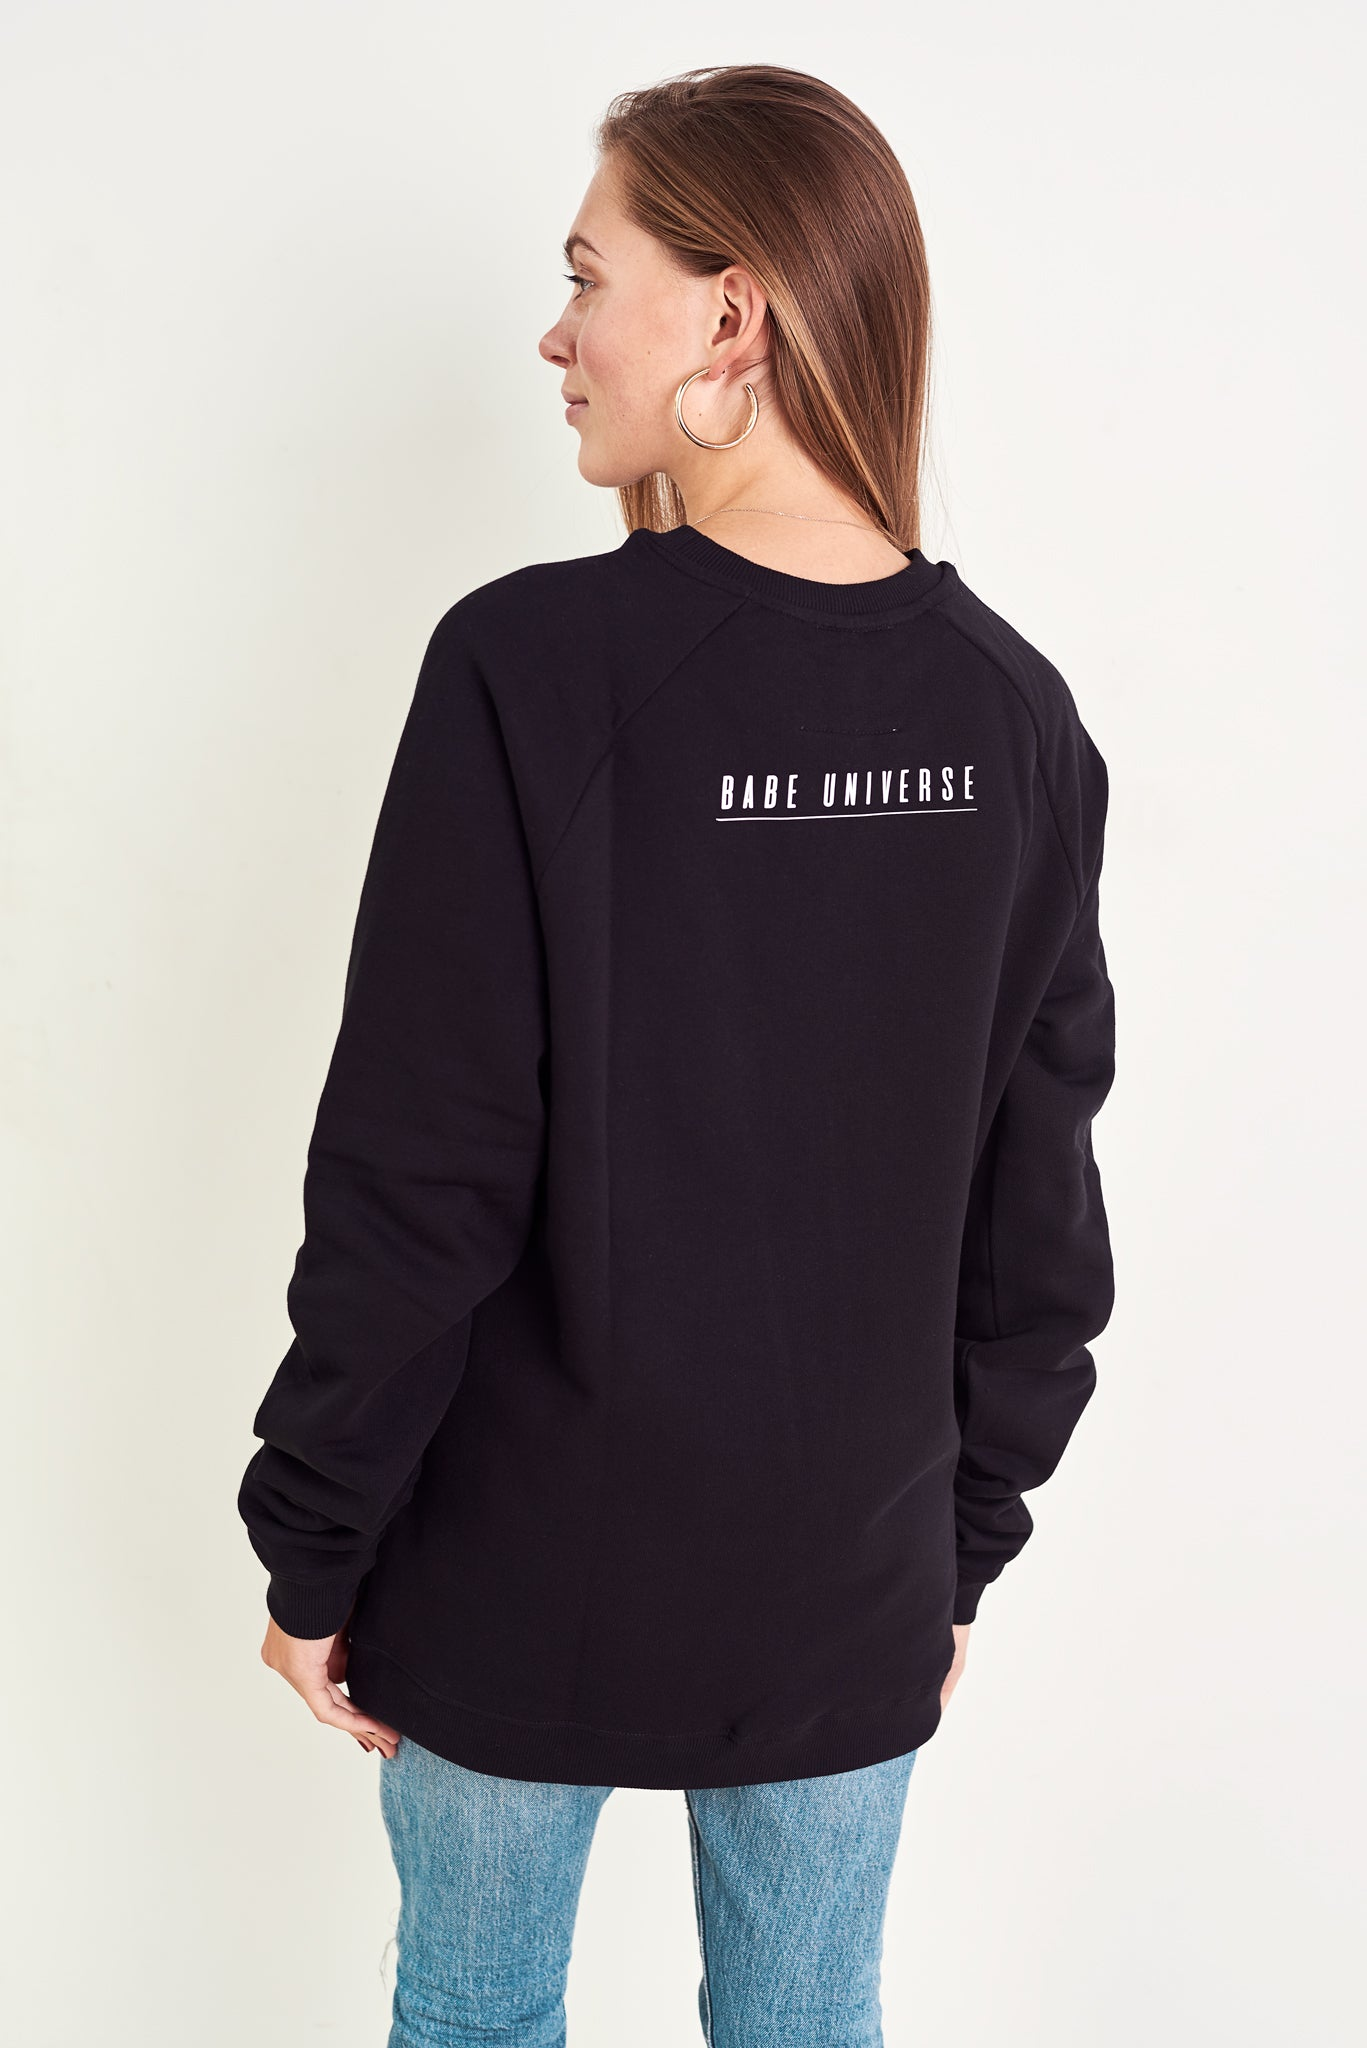 BABE ON A MISSION ORGANIC COTTON ECO-FRIENDLY JUMPER IN BLACK